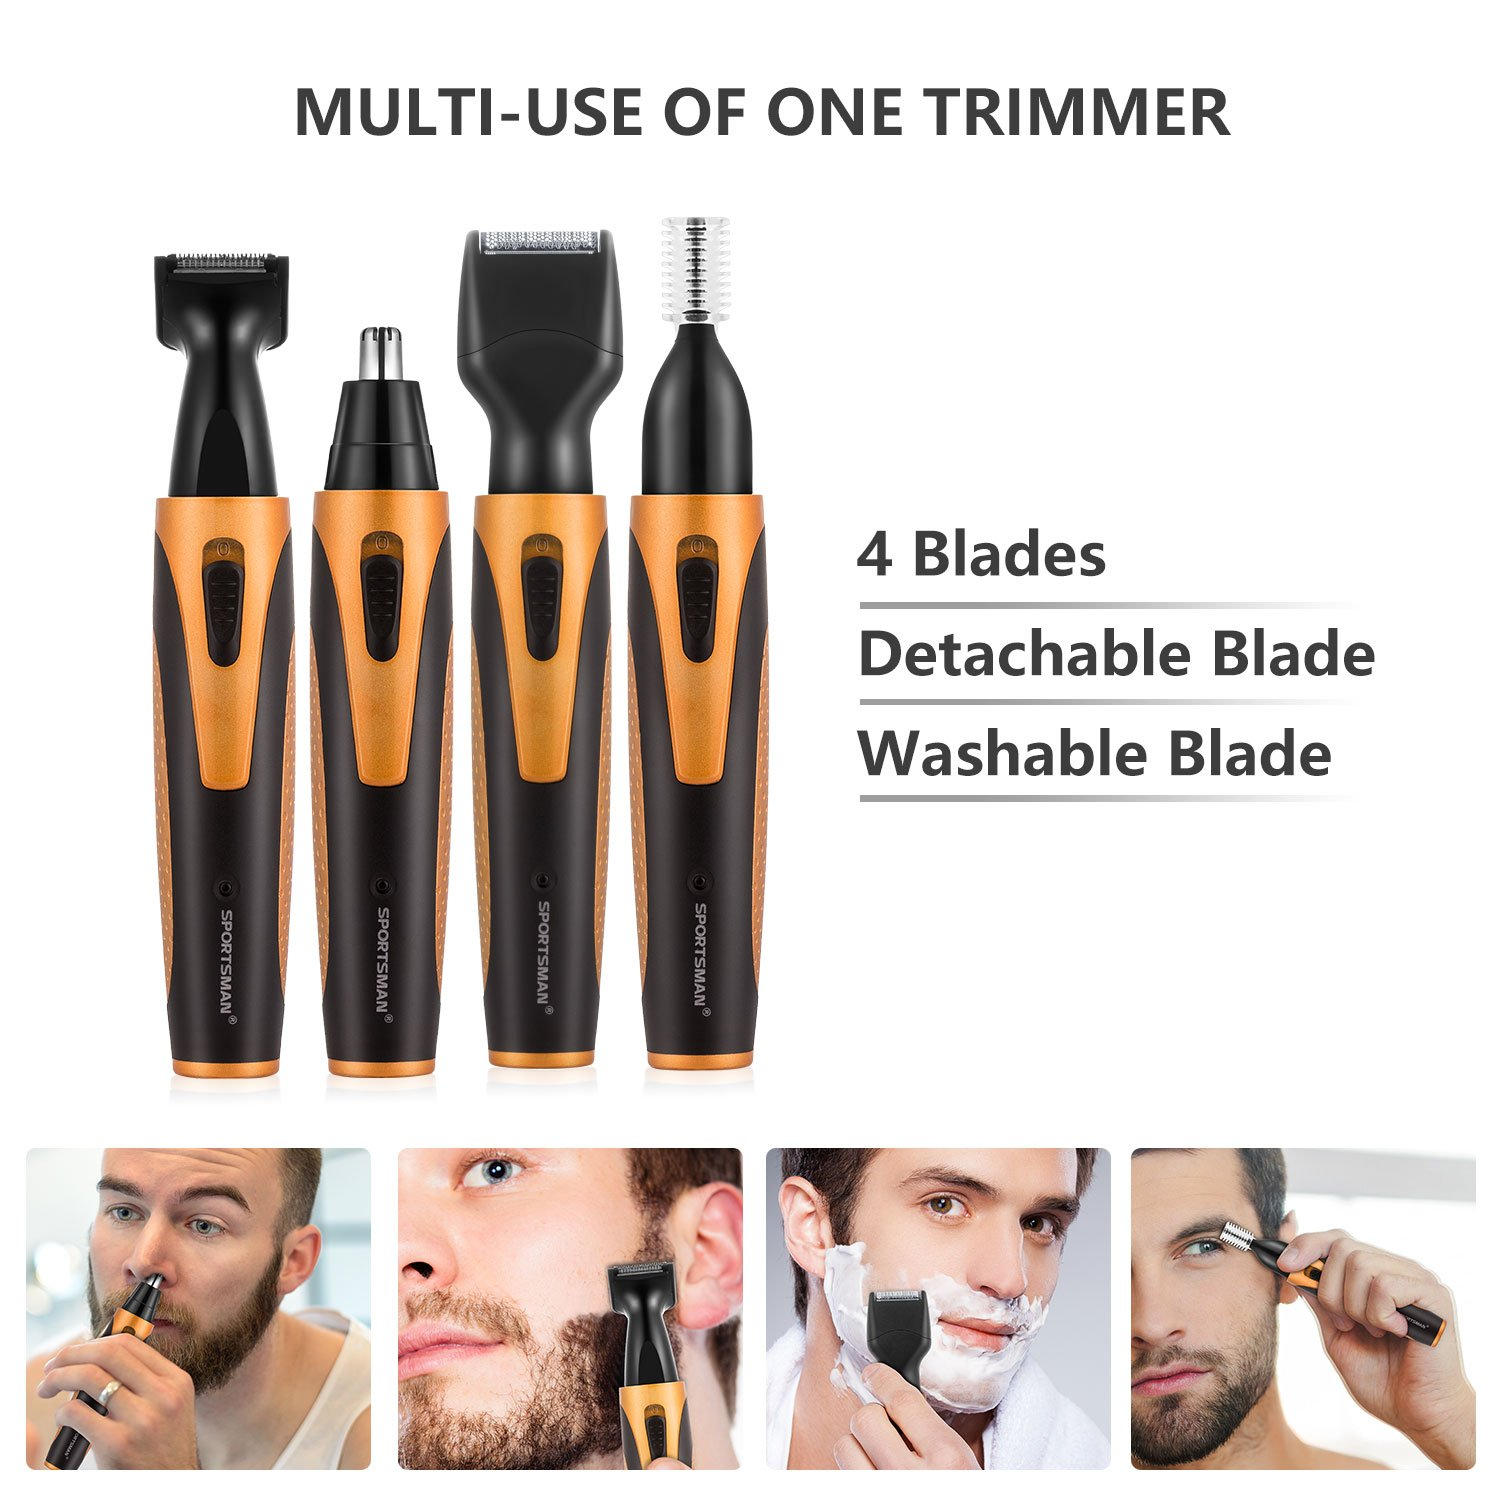 Nose Hair Trimmer, [Newest Version] USB 4 in 1 Rechargeable waterproof Nose Sideburn Eyebrow Beard Ear Hair Trimmer for Men & Women by Sportsman (Image #4)